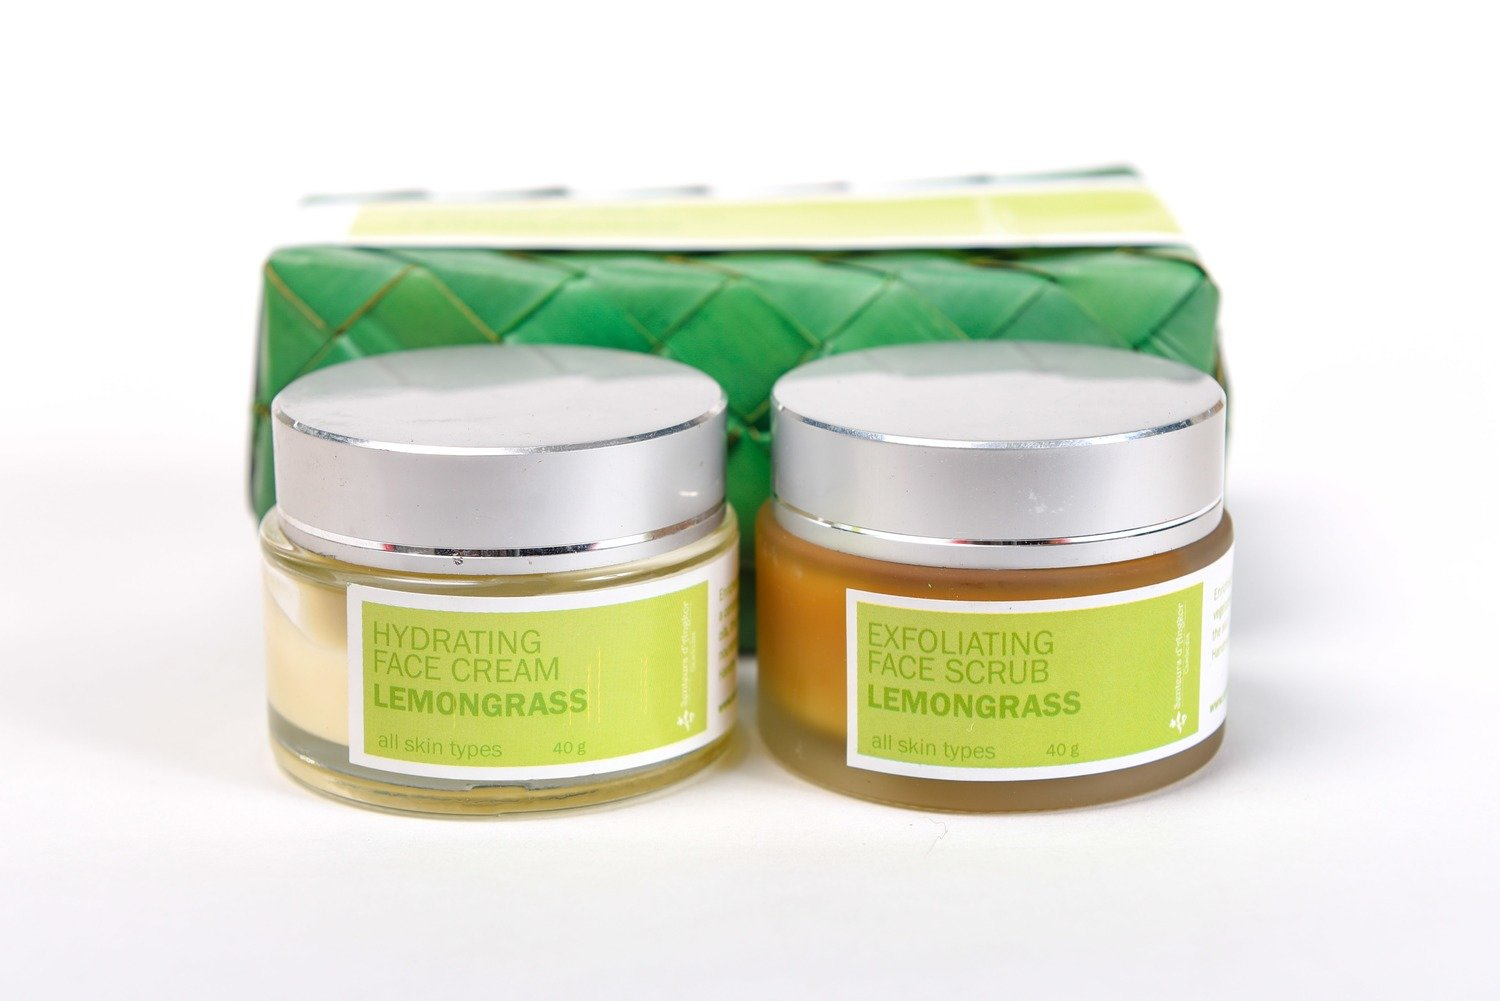 Set Facial Scrub and Cream 40g, Lemongrass